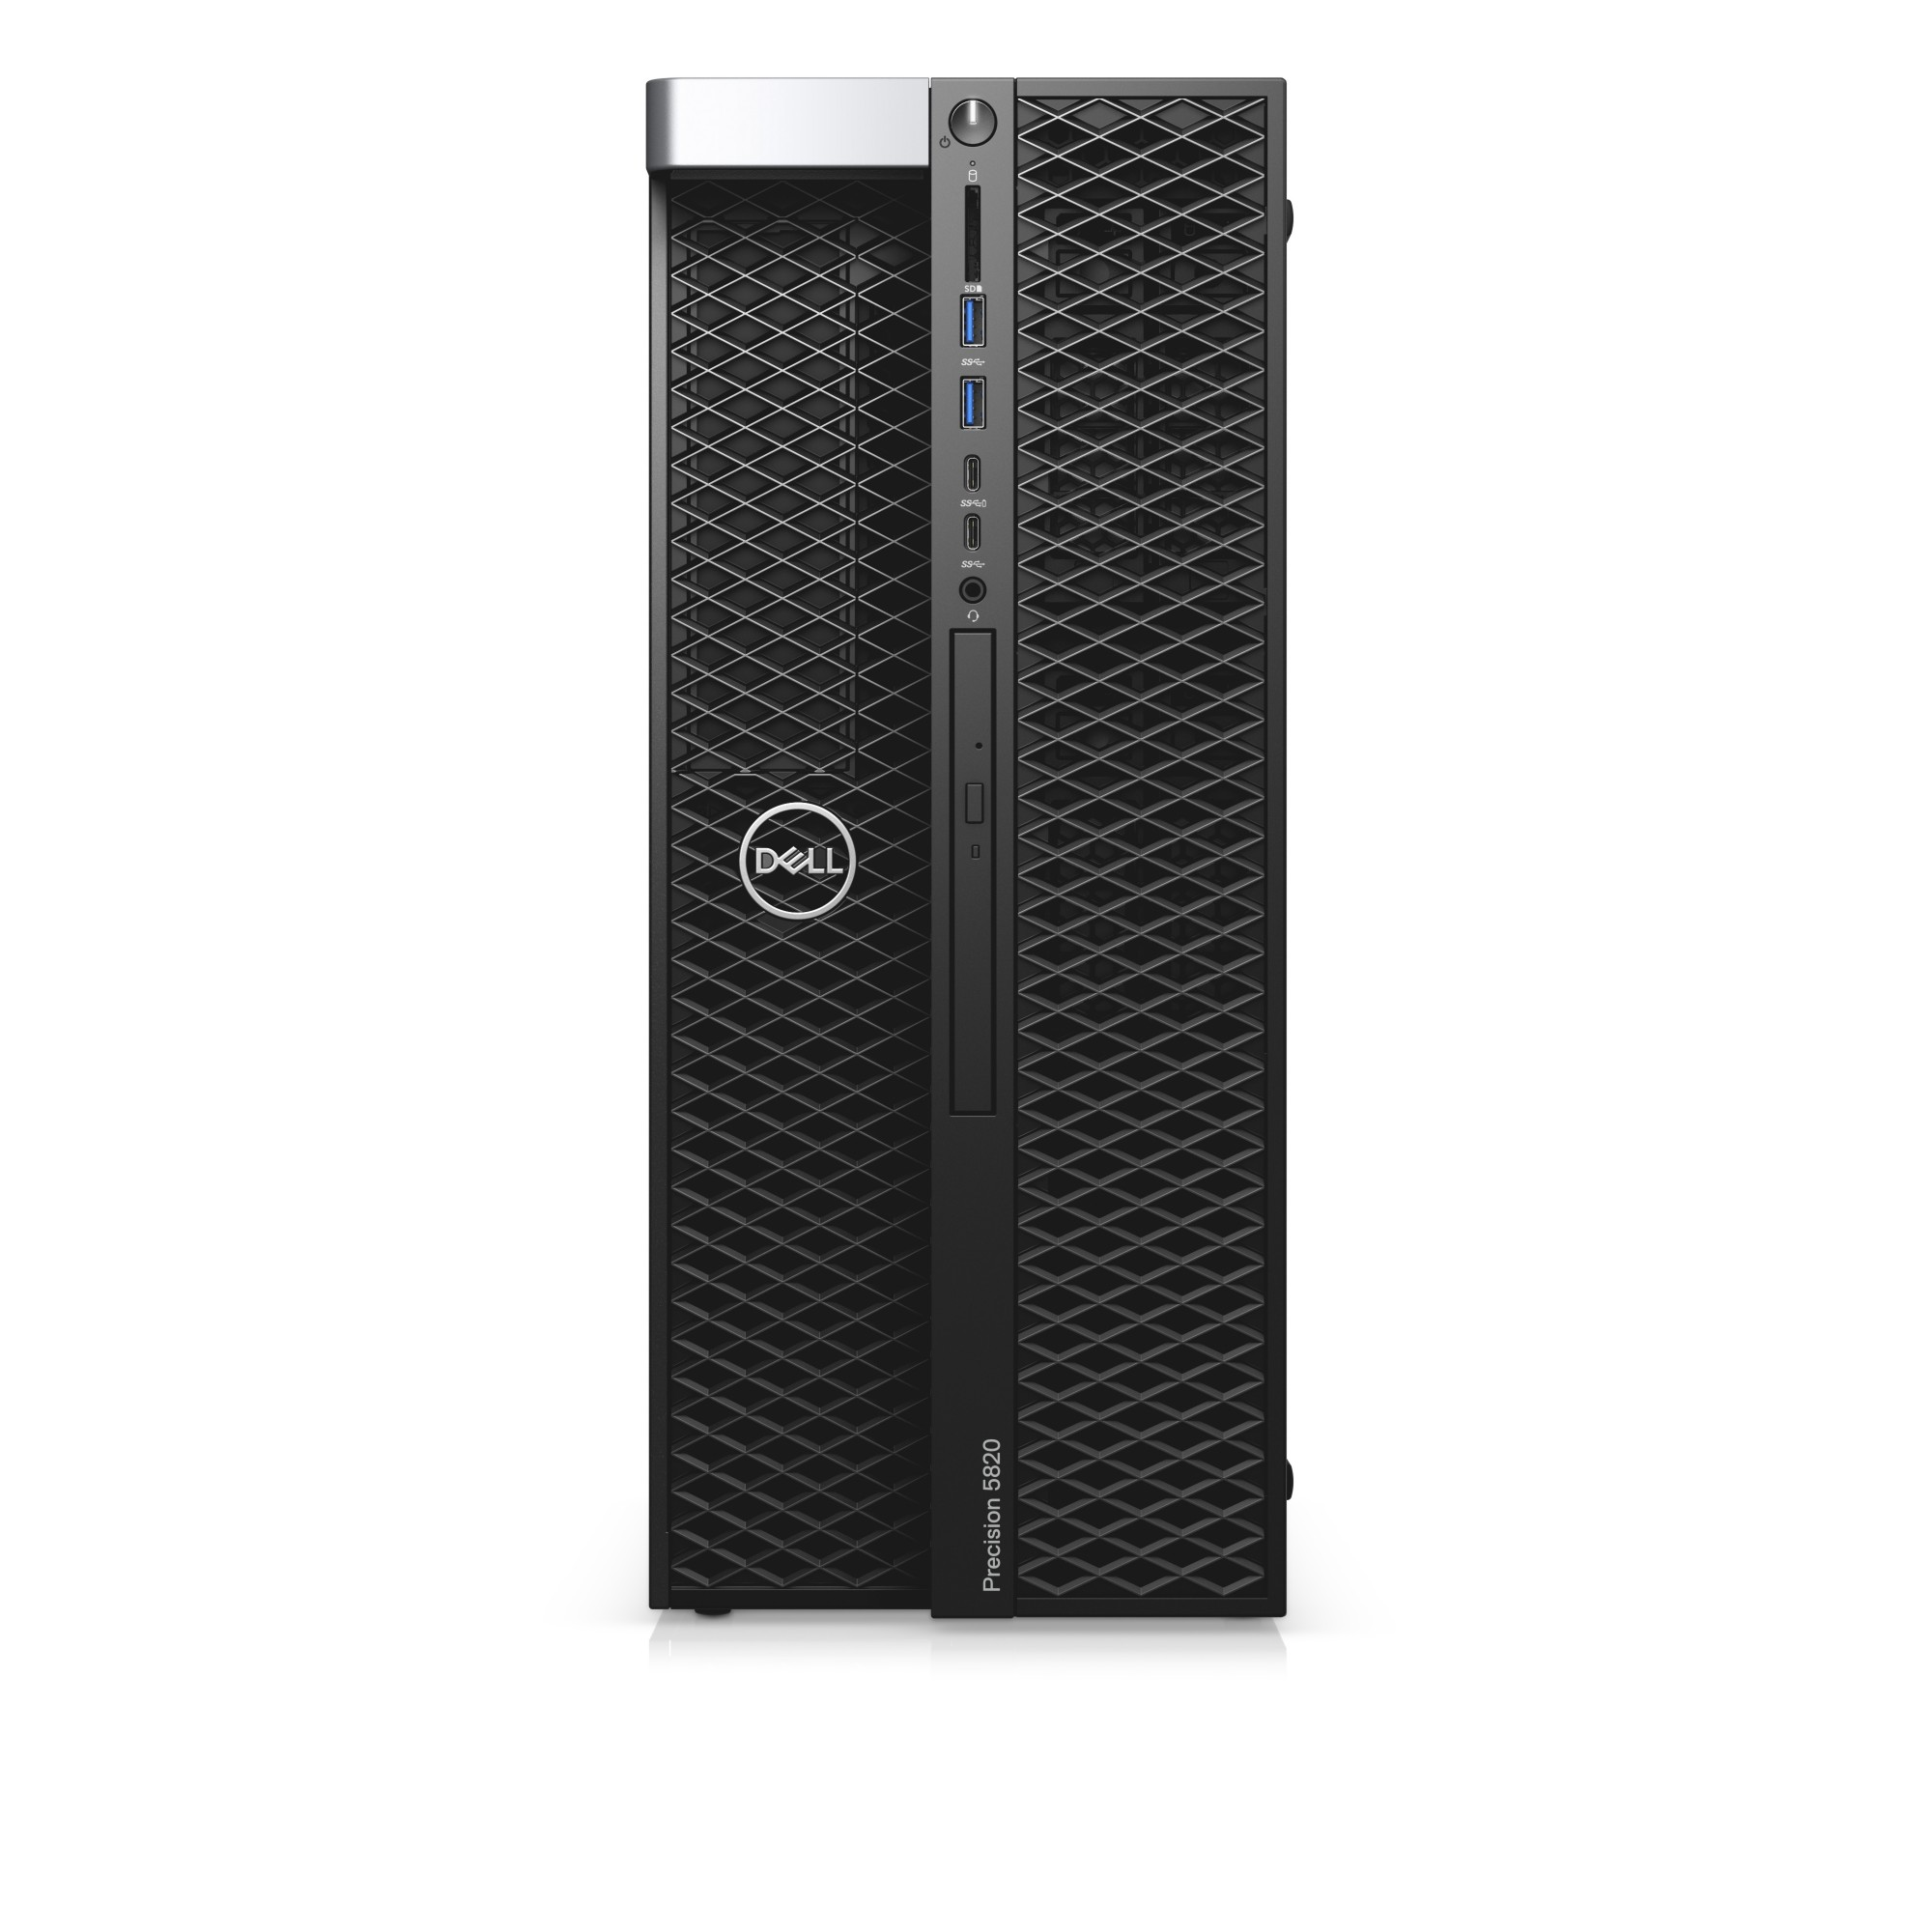 Dell Precision 5820 MT